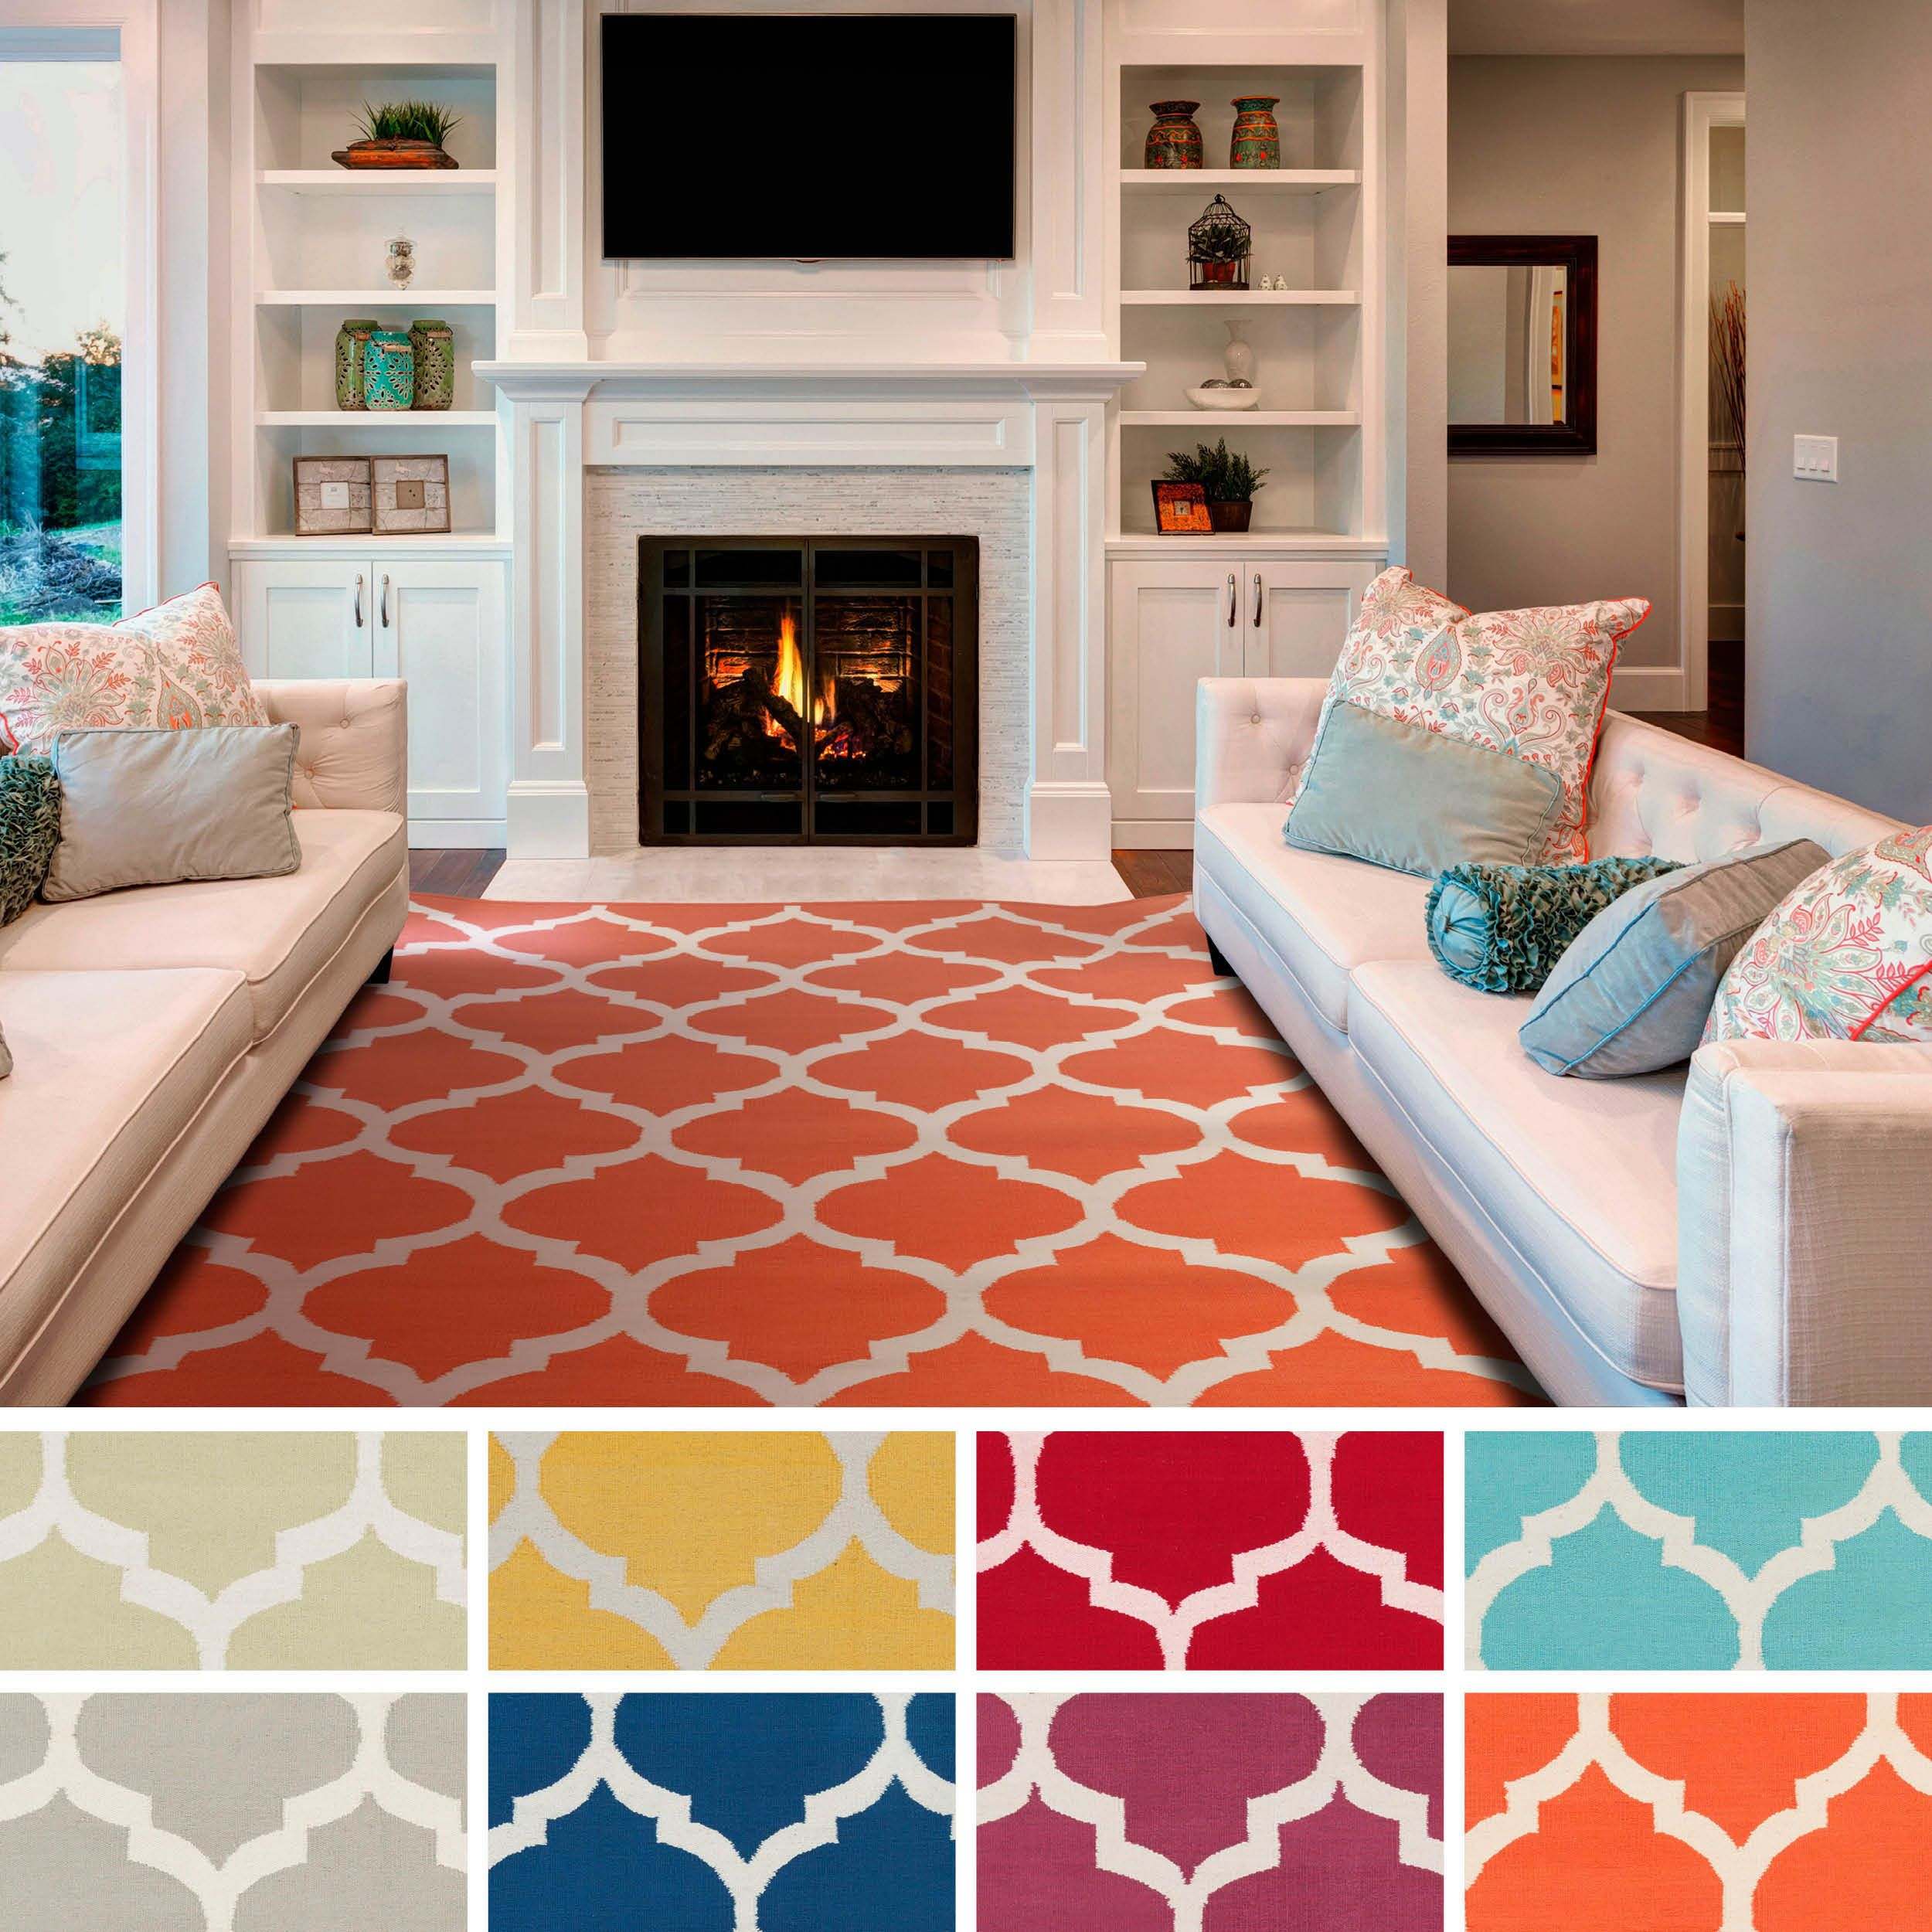 Available In A Variety Of Colors, This Bold Rug Features A